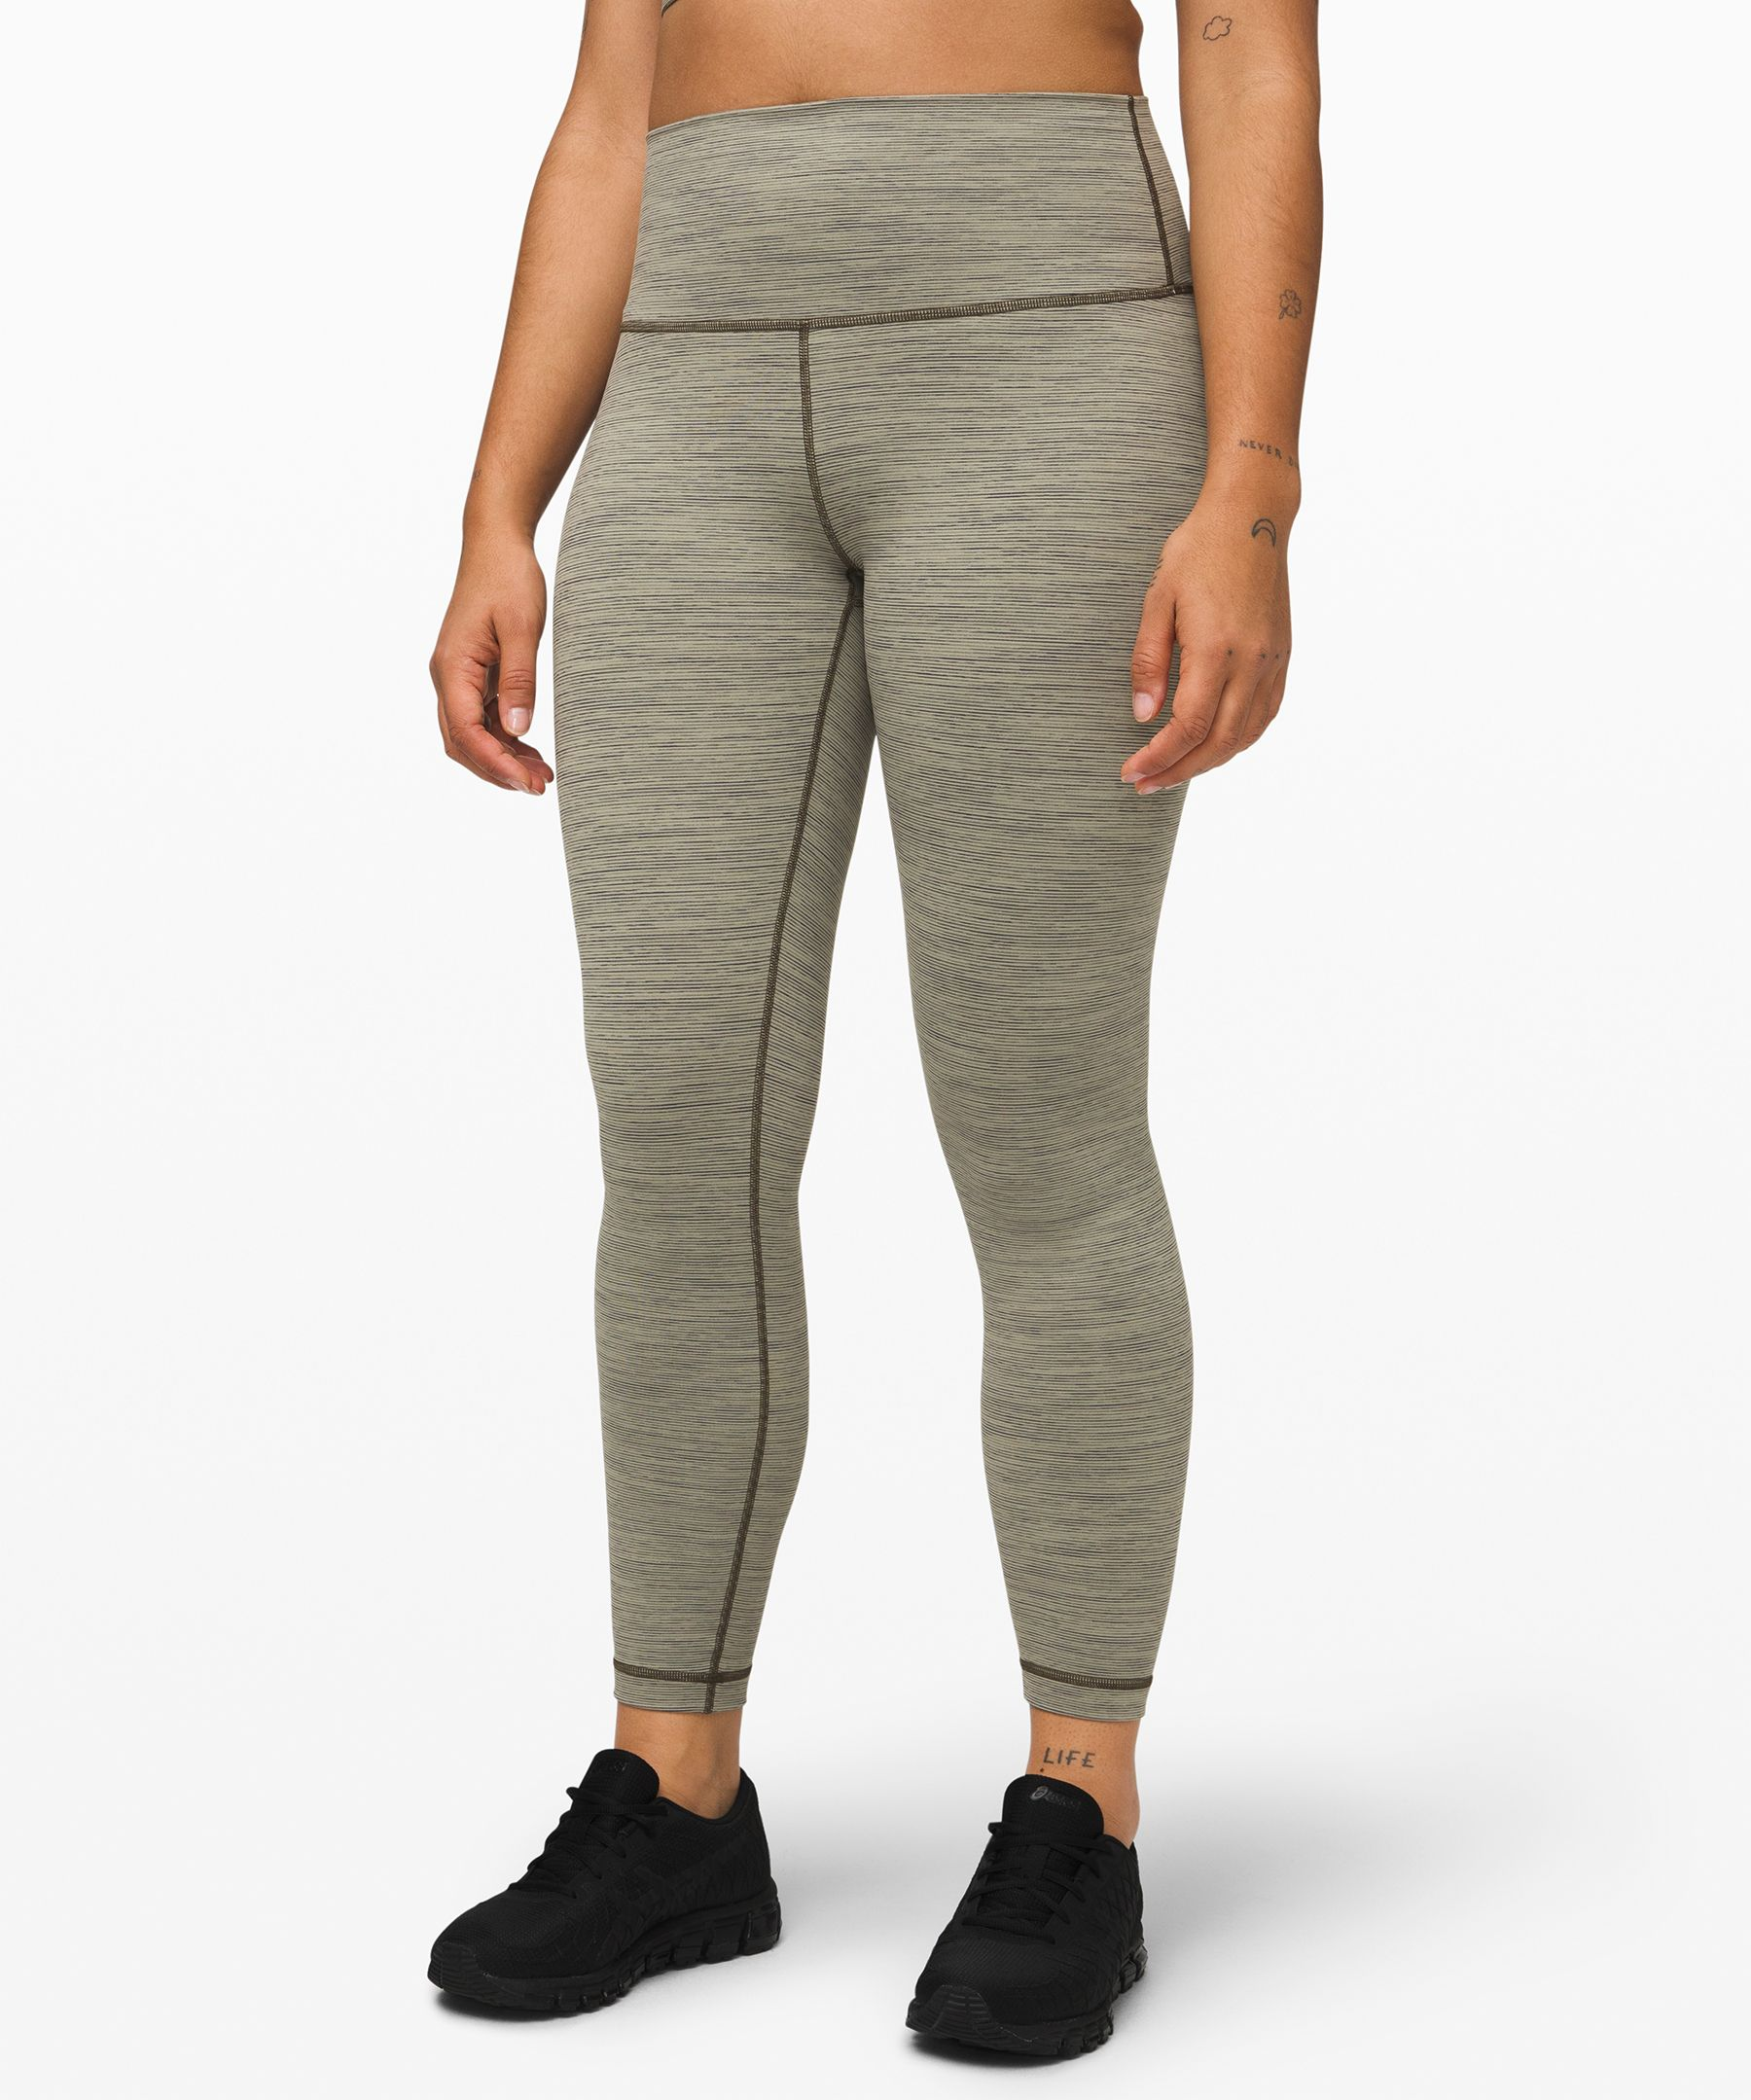 "Wunder Under High Rise Tight 25"" Full On Luxtreme Luxtreme™ by Lululemon"